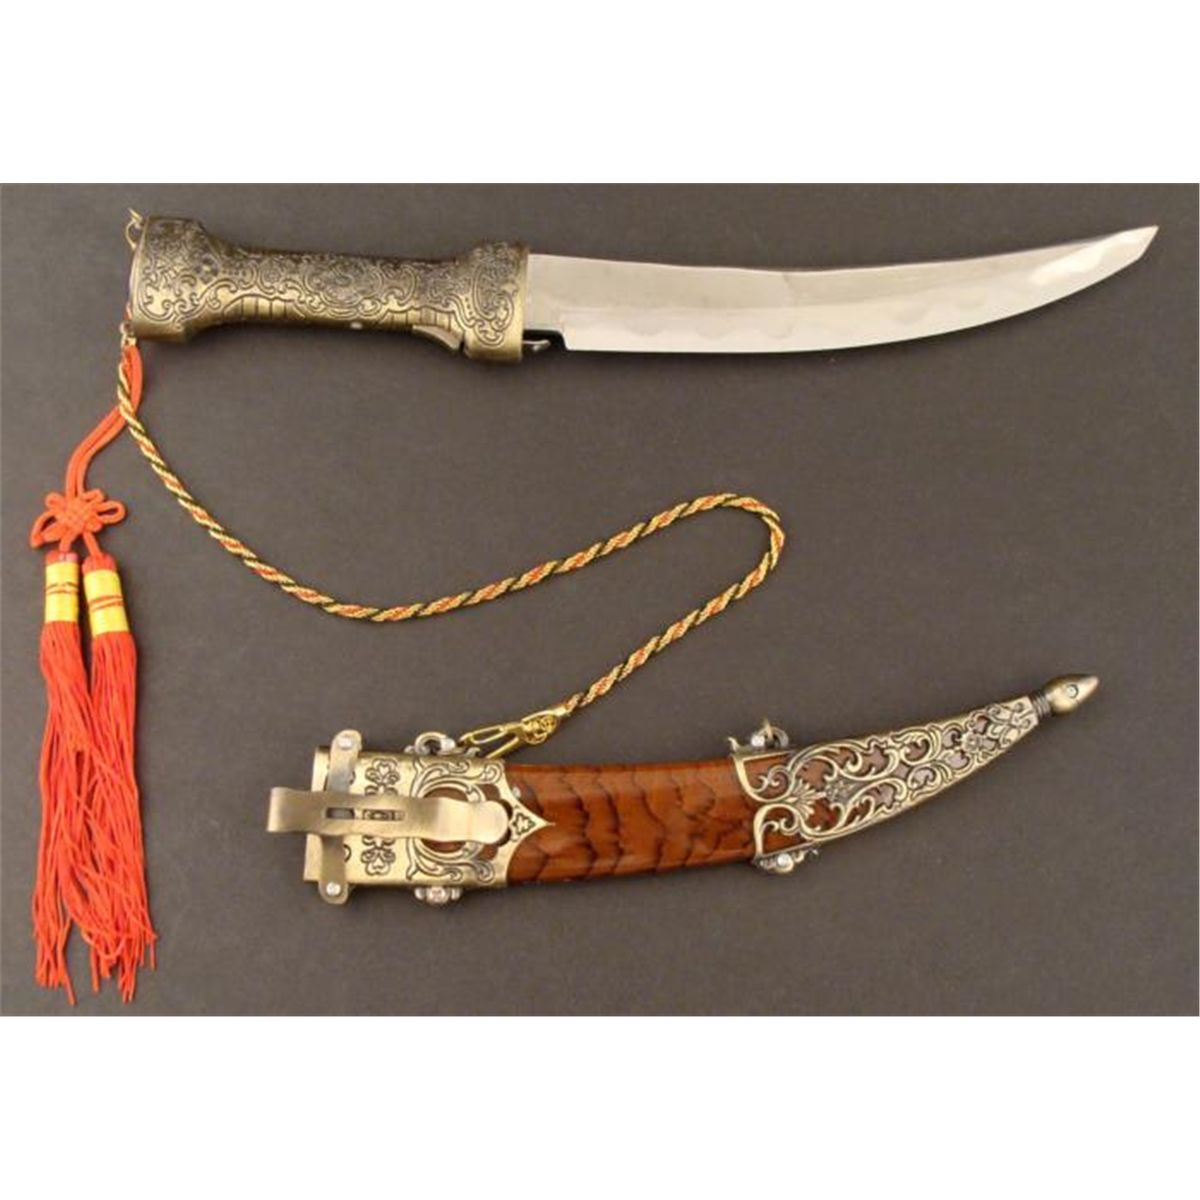 ASIAN/INDIA ORNATE DAGGER-CURVED-STEEL CHINESE BLADE